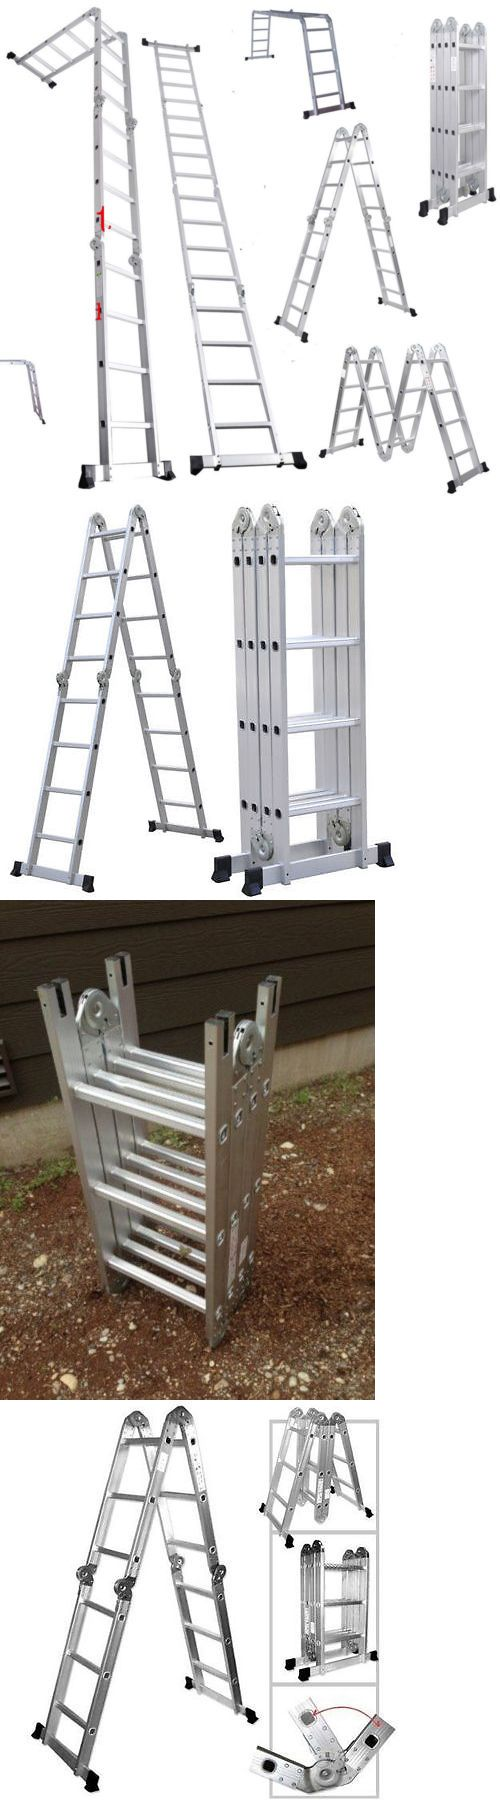 Ladders 112567: New 15.5Ft 16Step Aluminum Multi Purpose Ladder Telescoping Folding Extension -> BUY IT NOW ONLY: $80.99 on eBay!